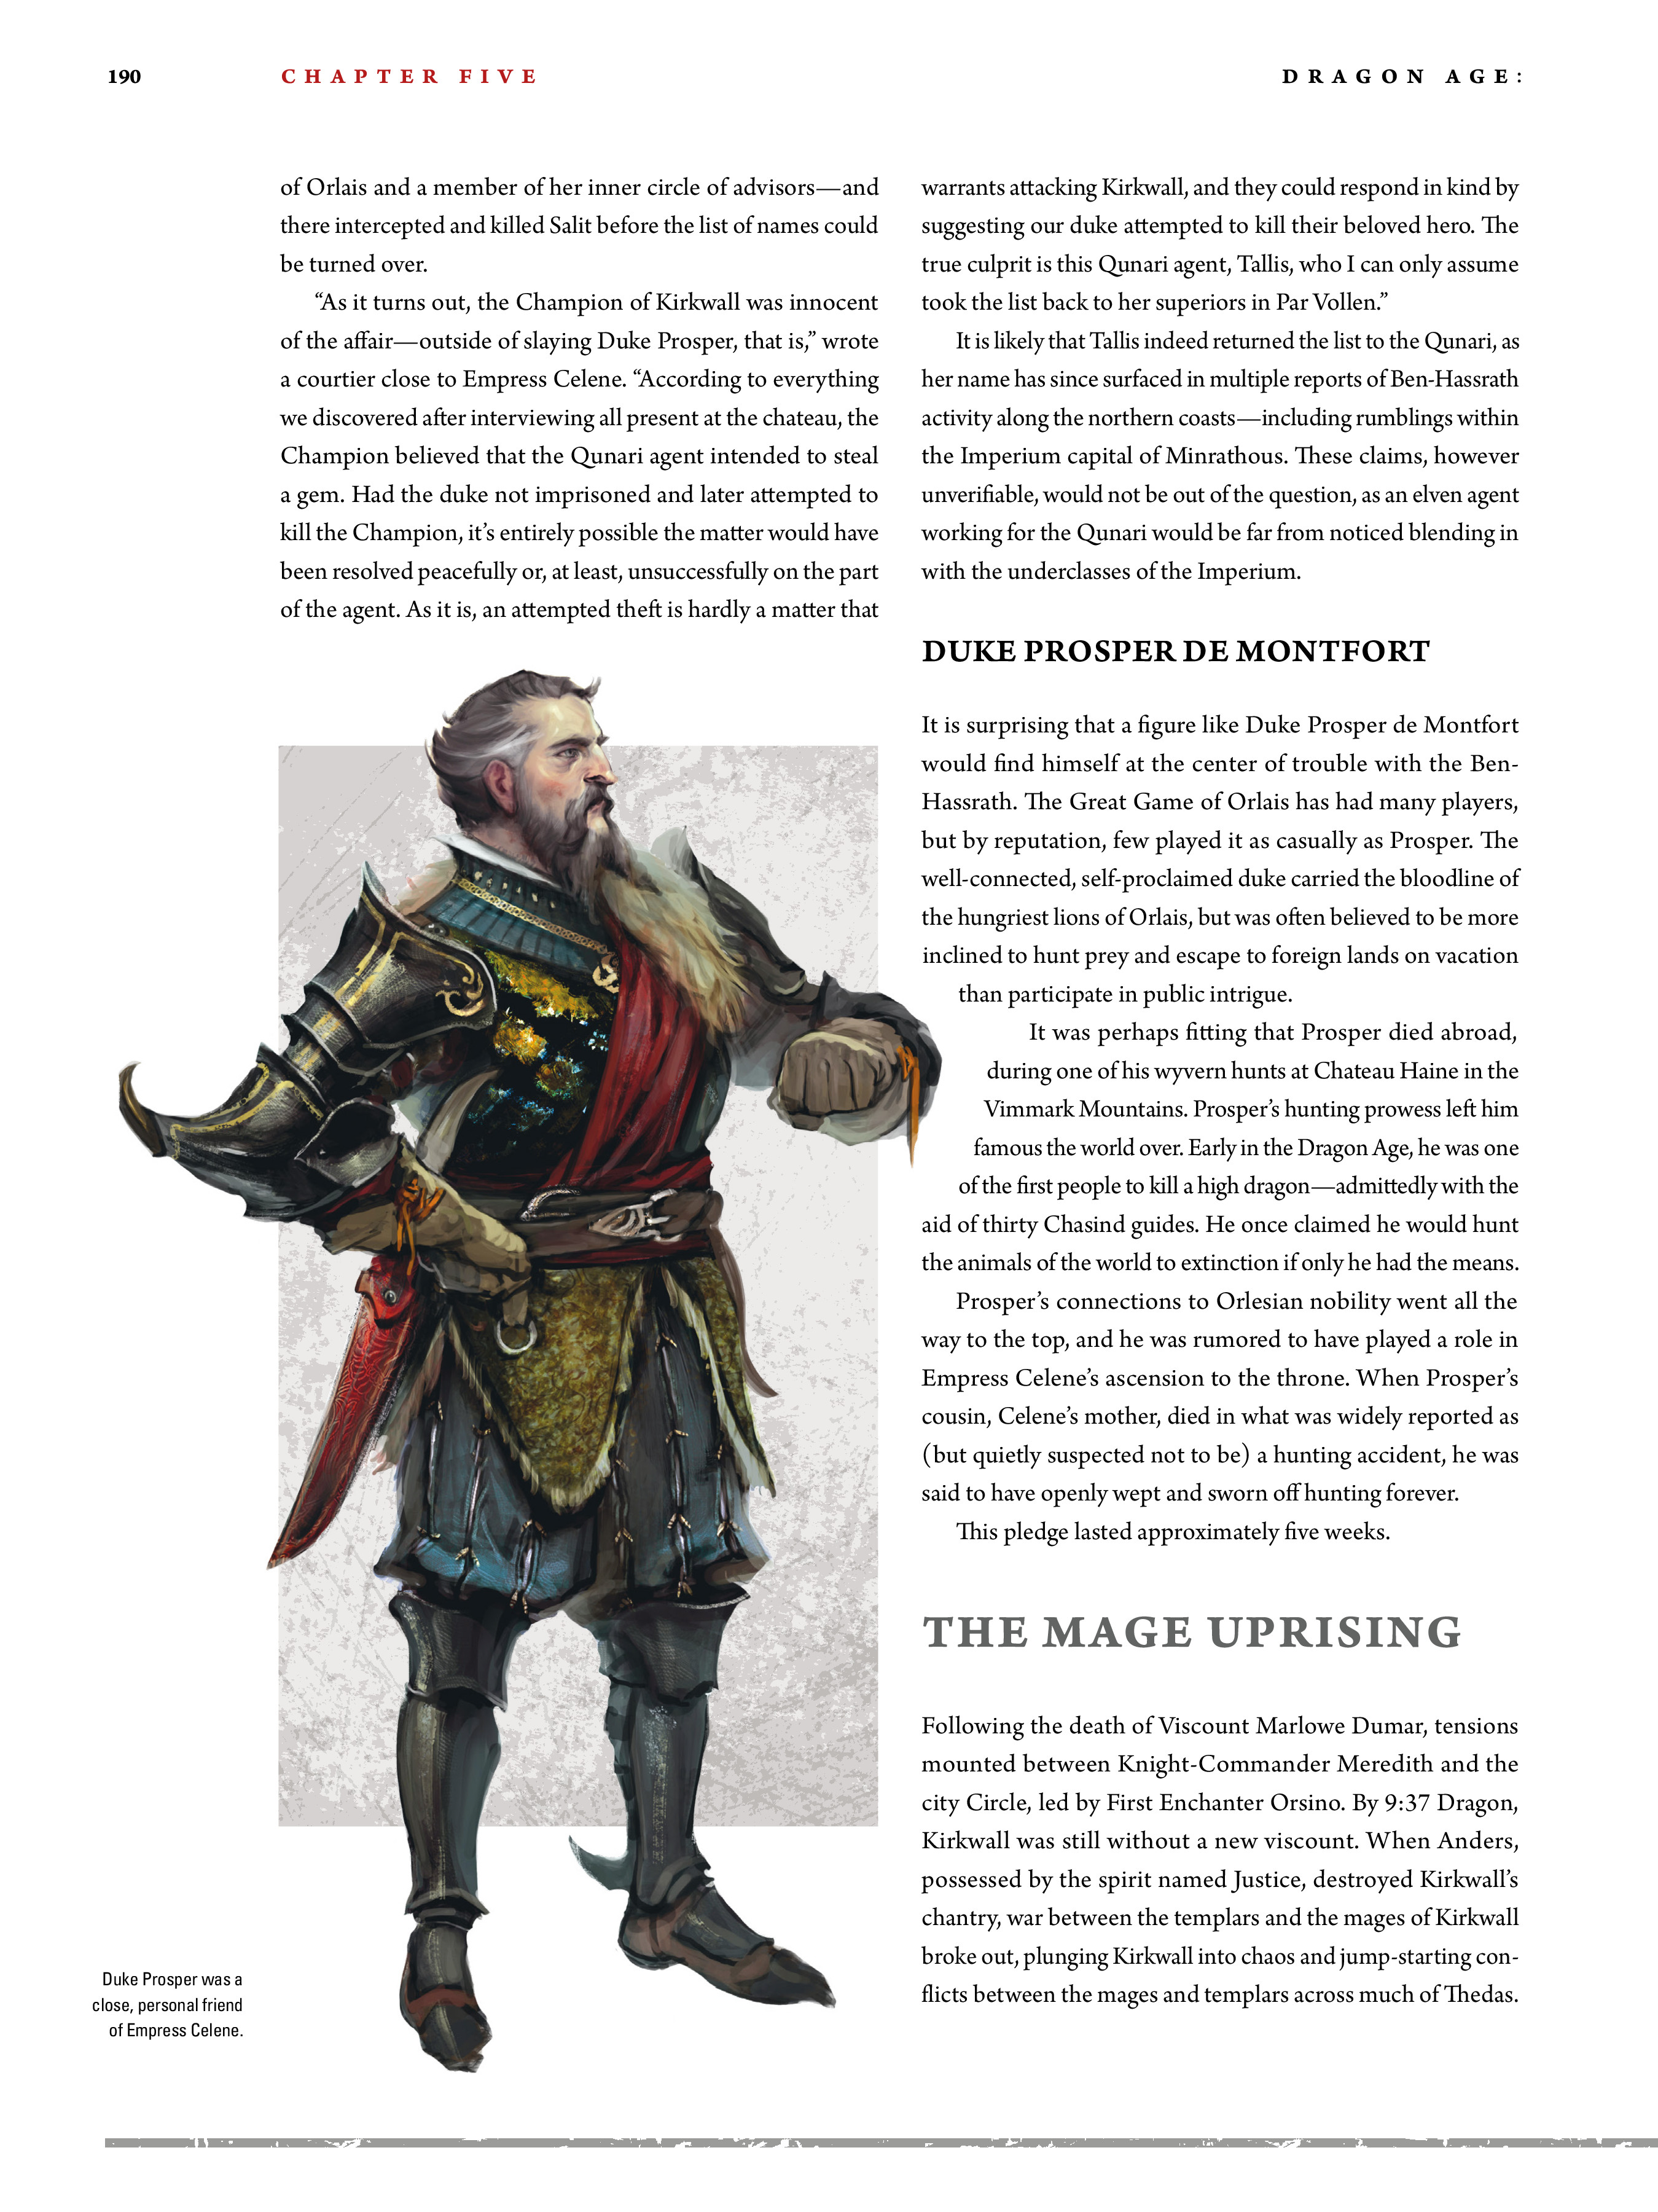 Read online Dragon Age: The World of Thedas comic -  Issue # TPB 2 - 185